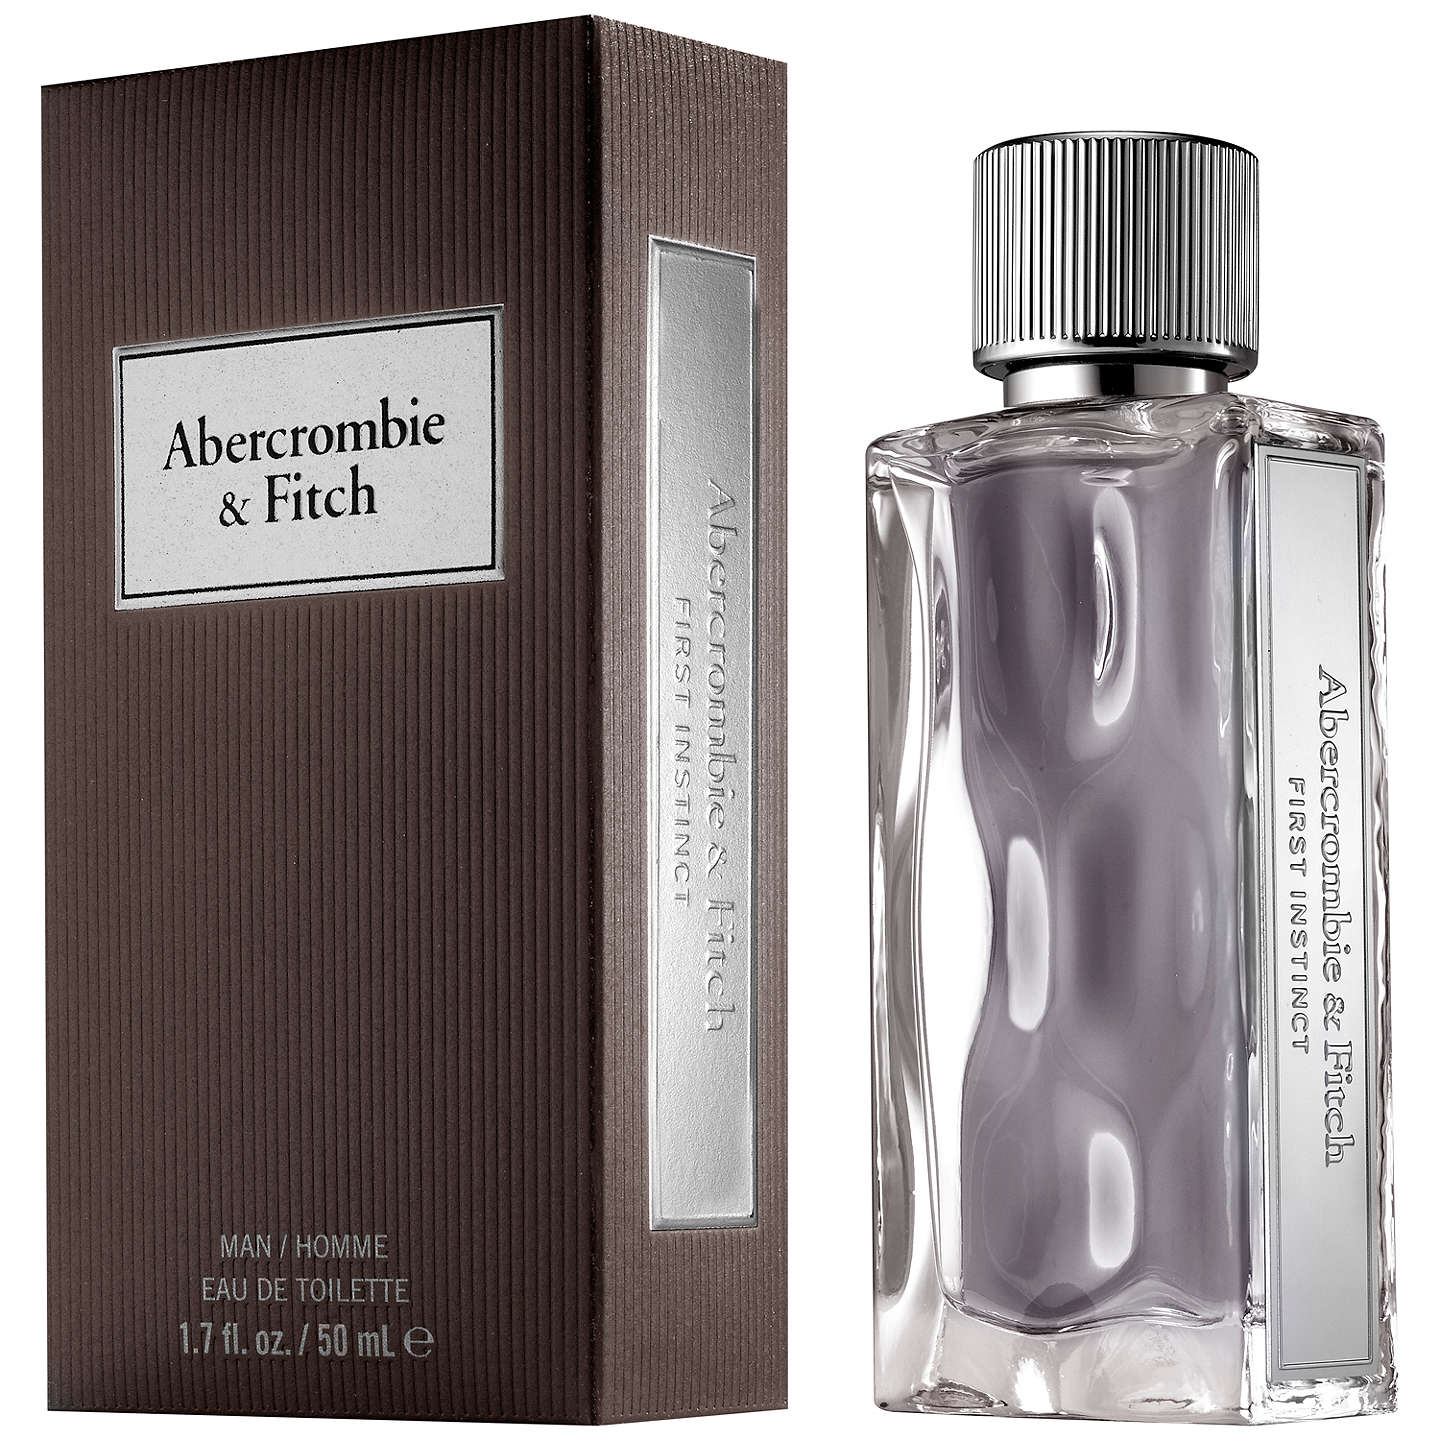 BuyAbercrombie & Fitch First Instinct Eau de Toilette, 50ml Online at johnlewis.com